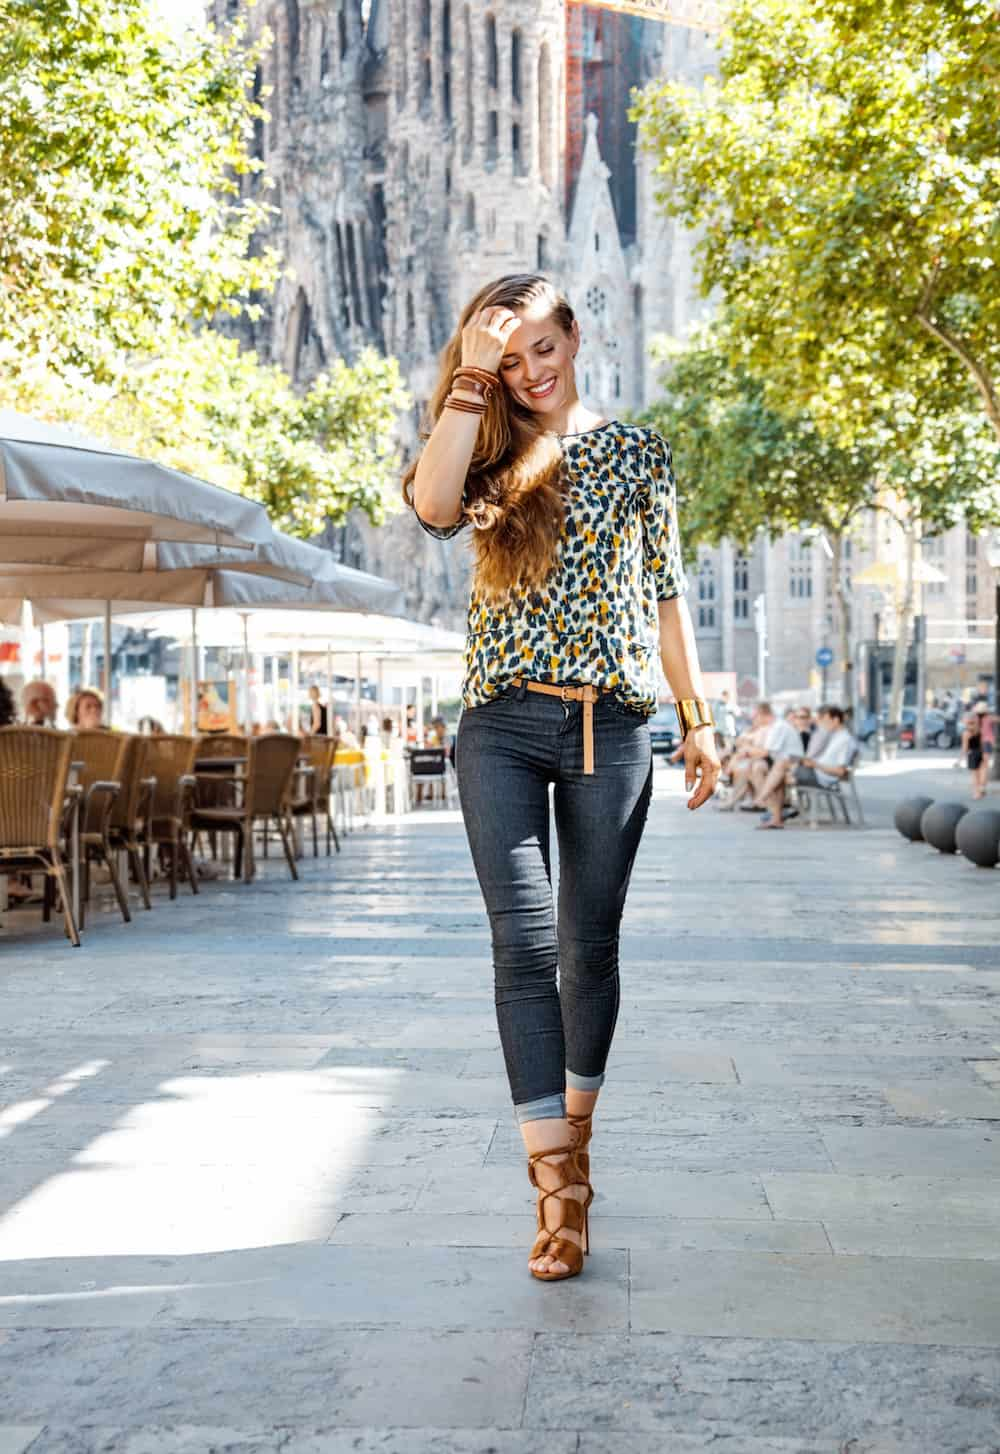 95569242b7f How to Dress in Barcelona According to Season - Latitude 41